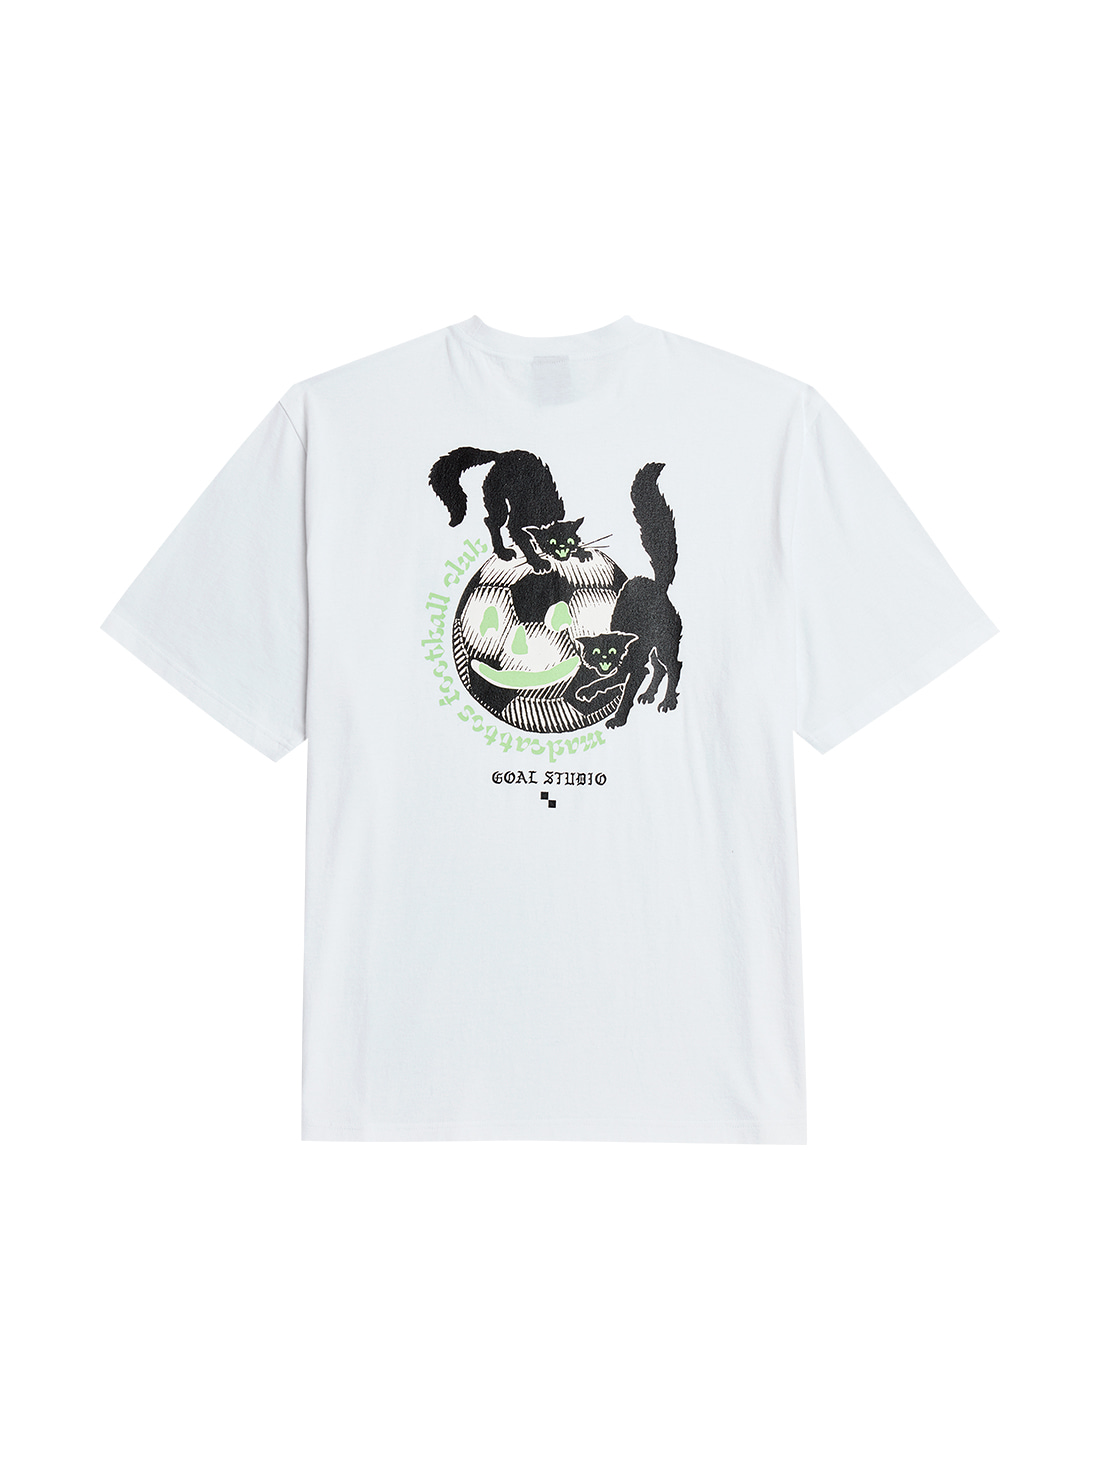 GOALSTUDIO MC BALL GRAPHIC TEE - WHITE